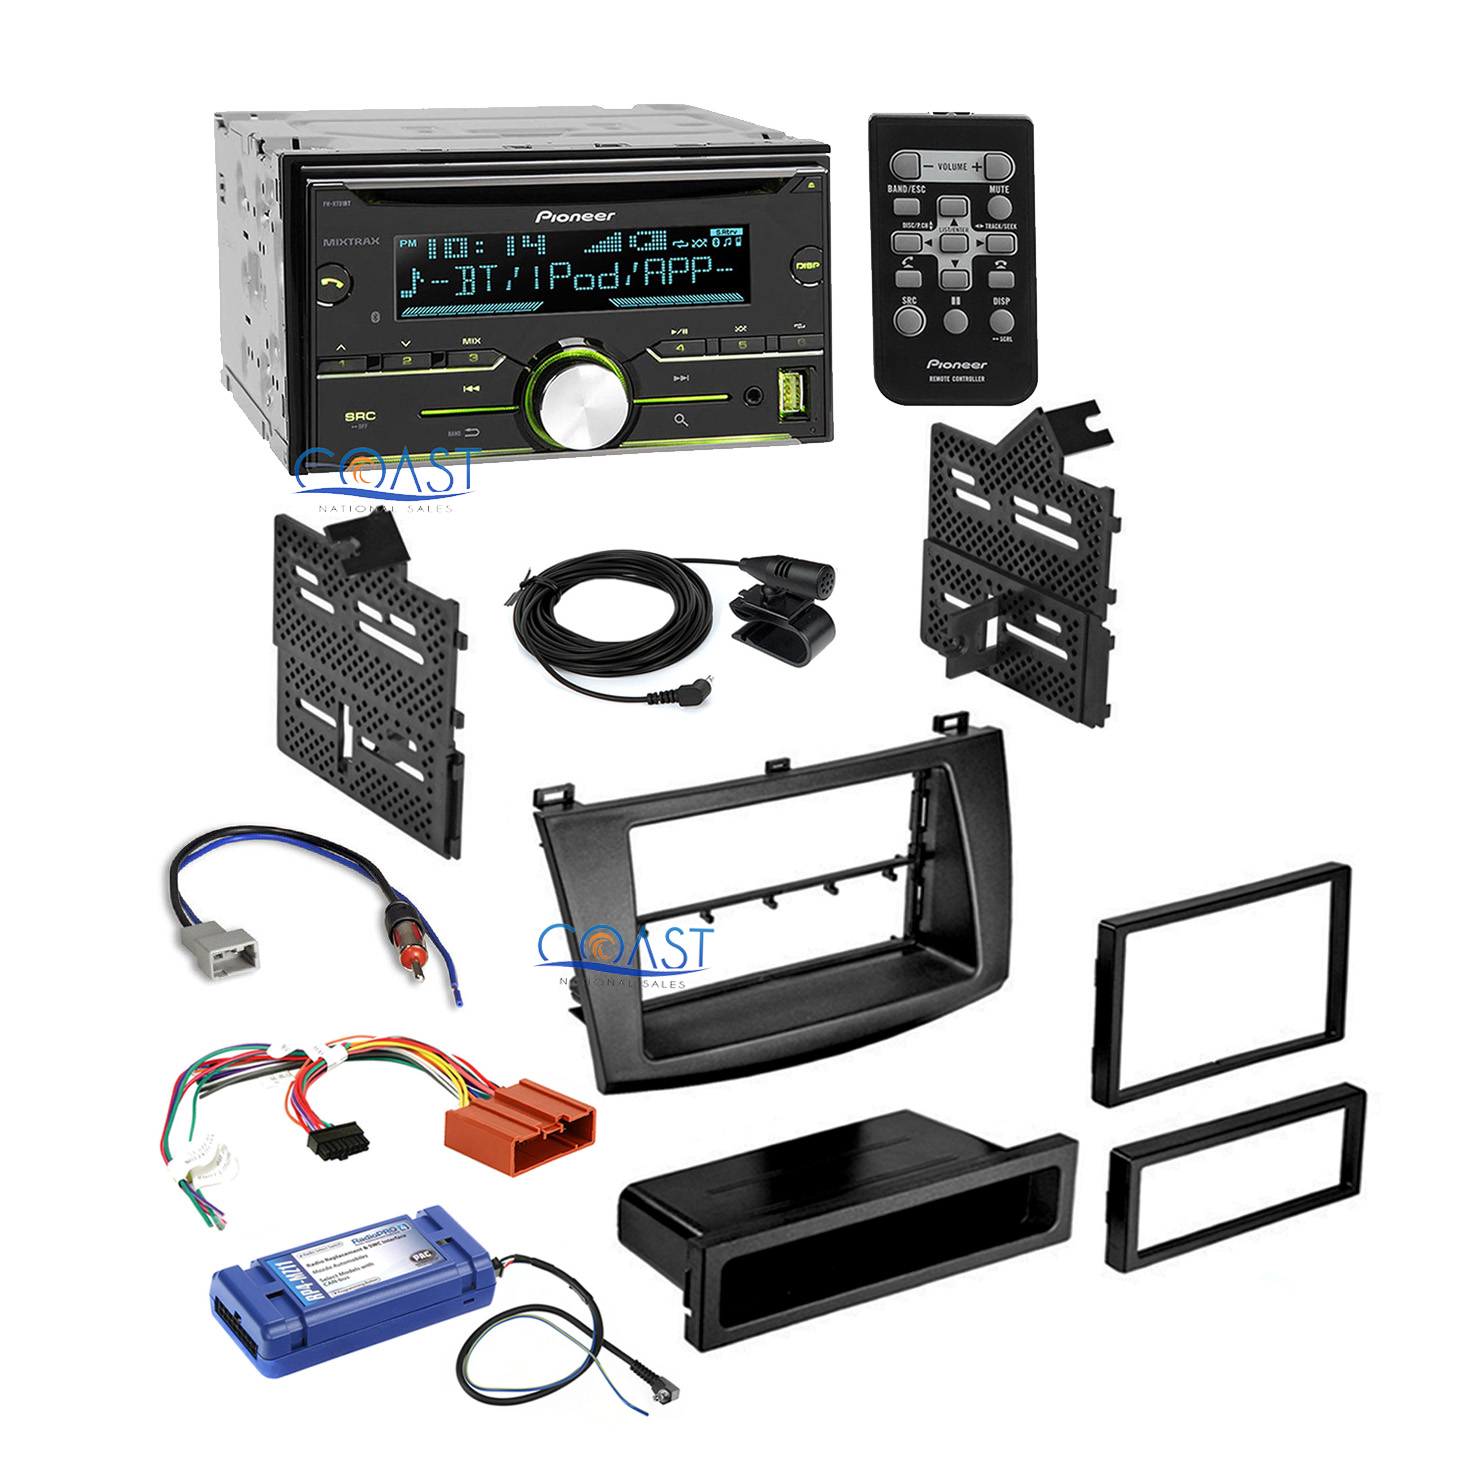 pioneer car radio stereo dash kit harness interface swc. Black Bedroom Furniture Sets. Home Design Ideas